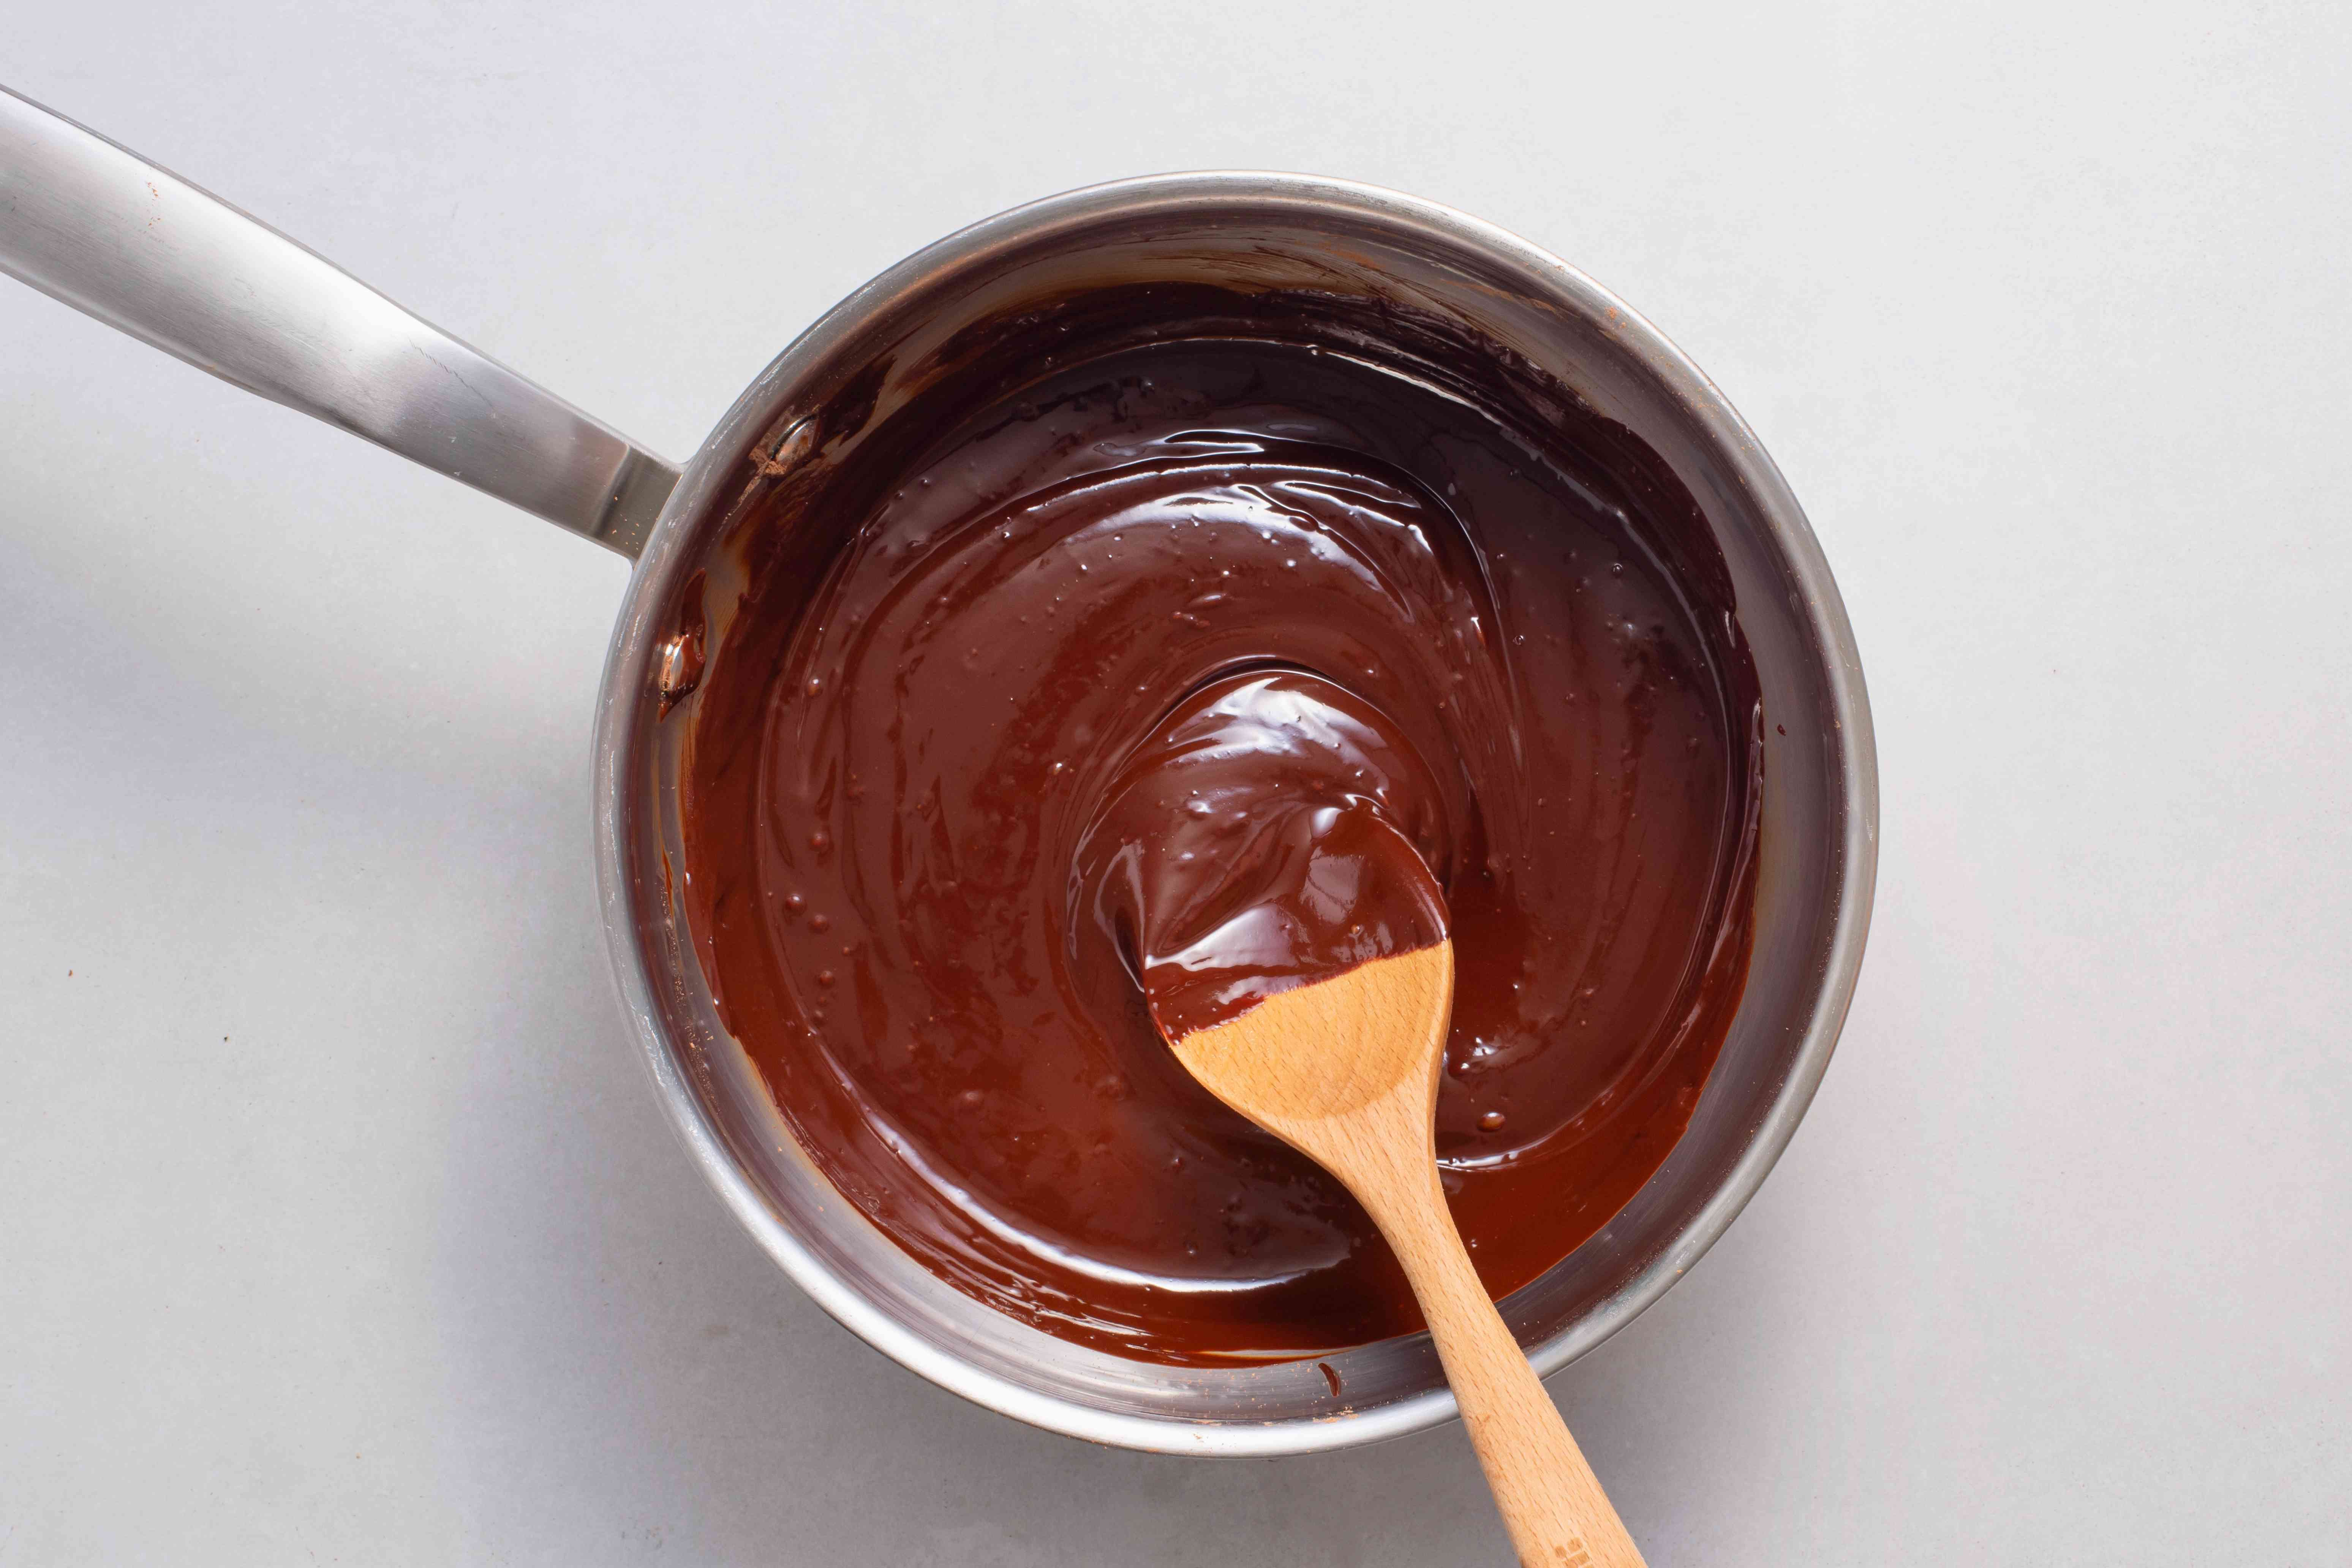 cocoa powder and espresso powder added to the chocolate in the saucepan